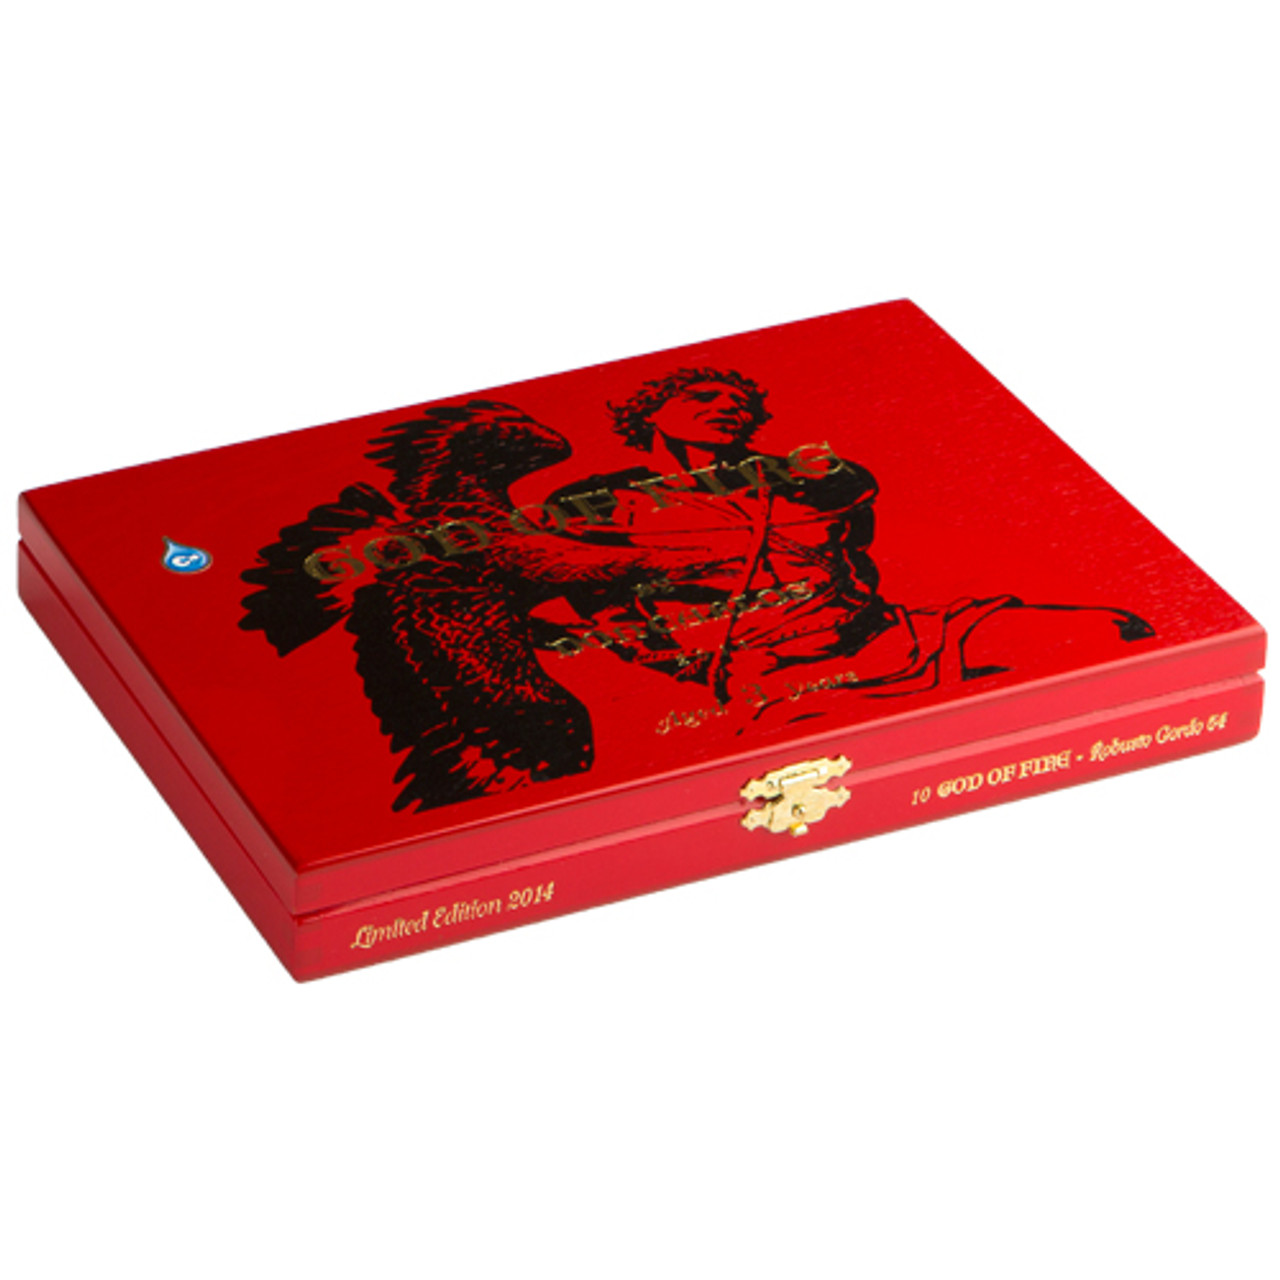 God of Fire by Don Carlos Robusto Tubo Cigars - 5.25 x 50 (Box of 8)